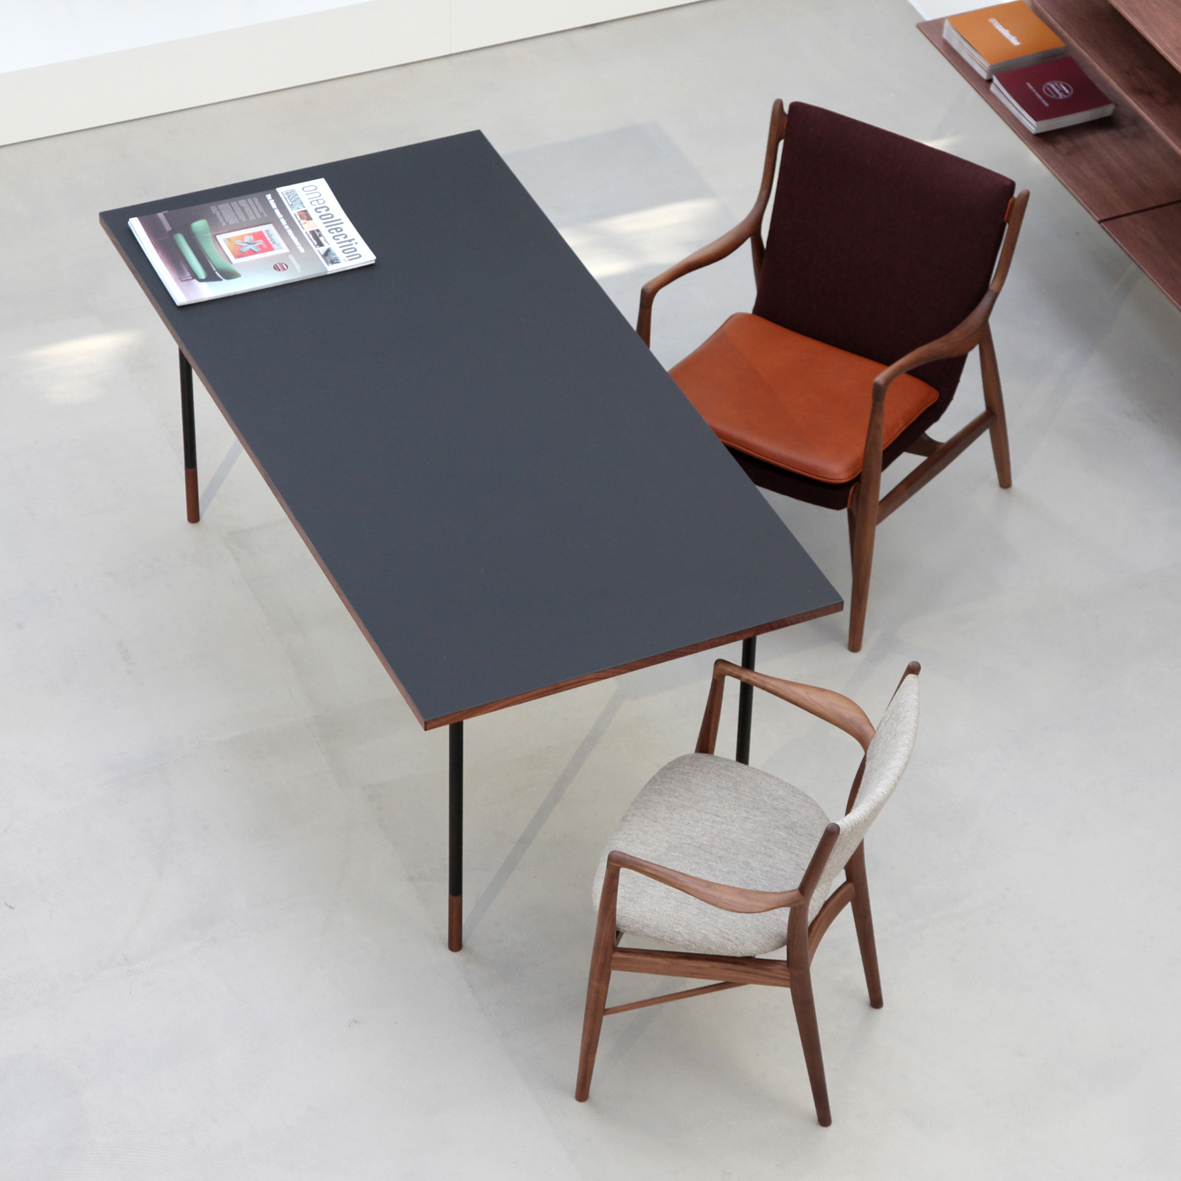 House Of Finn Juhl Nyhavn Table Amp Desk Design Finn Juhl